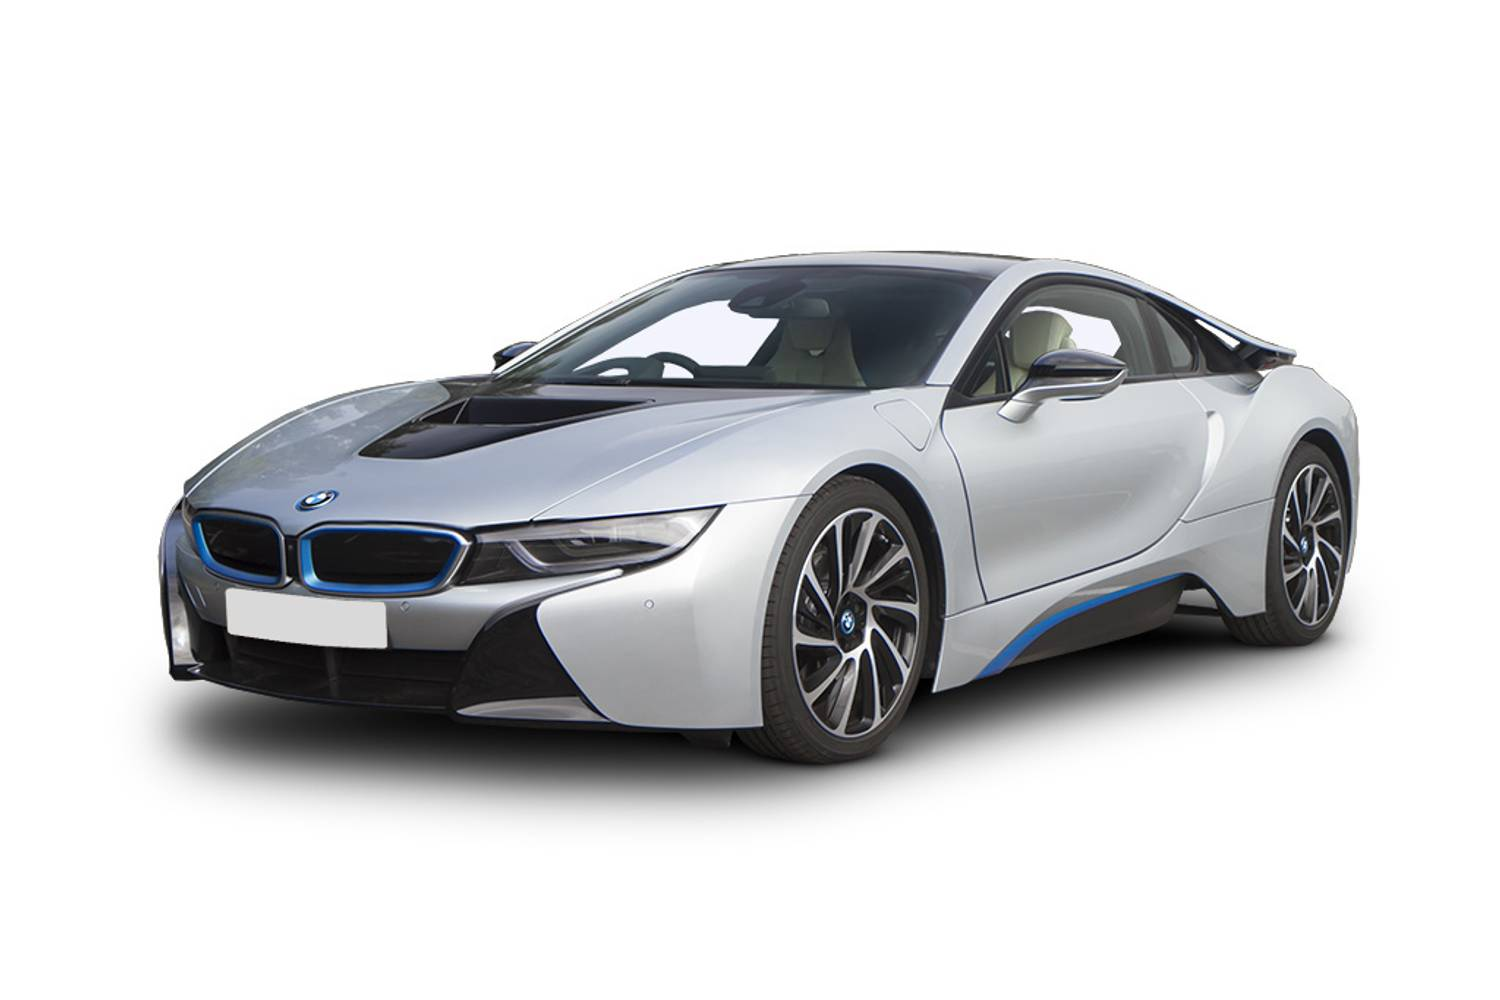 New BMW I8 Coupe (374 PS) 2-door Auto (2018-) For Sale